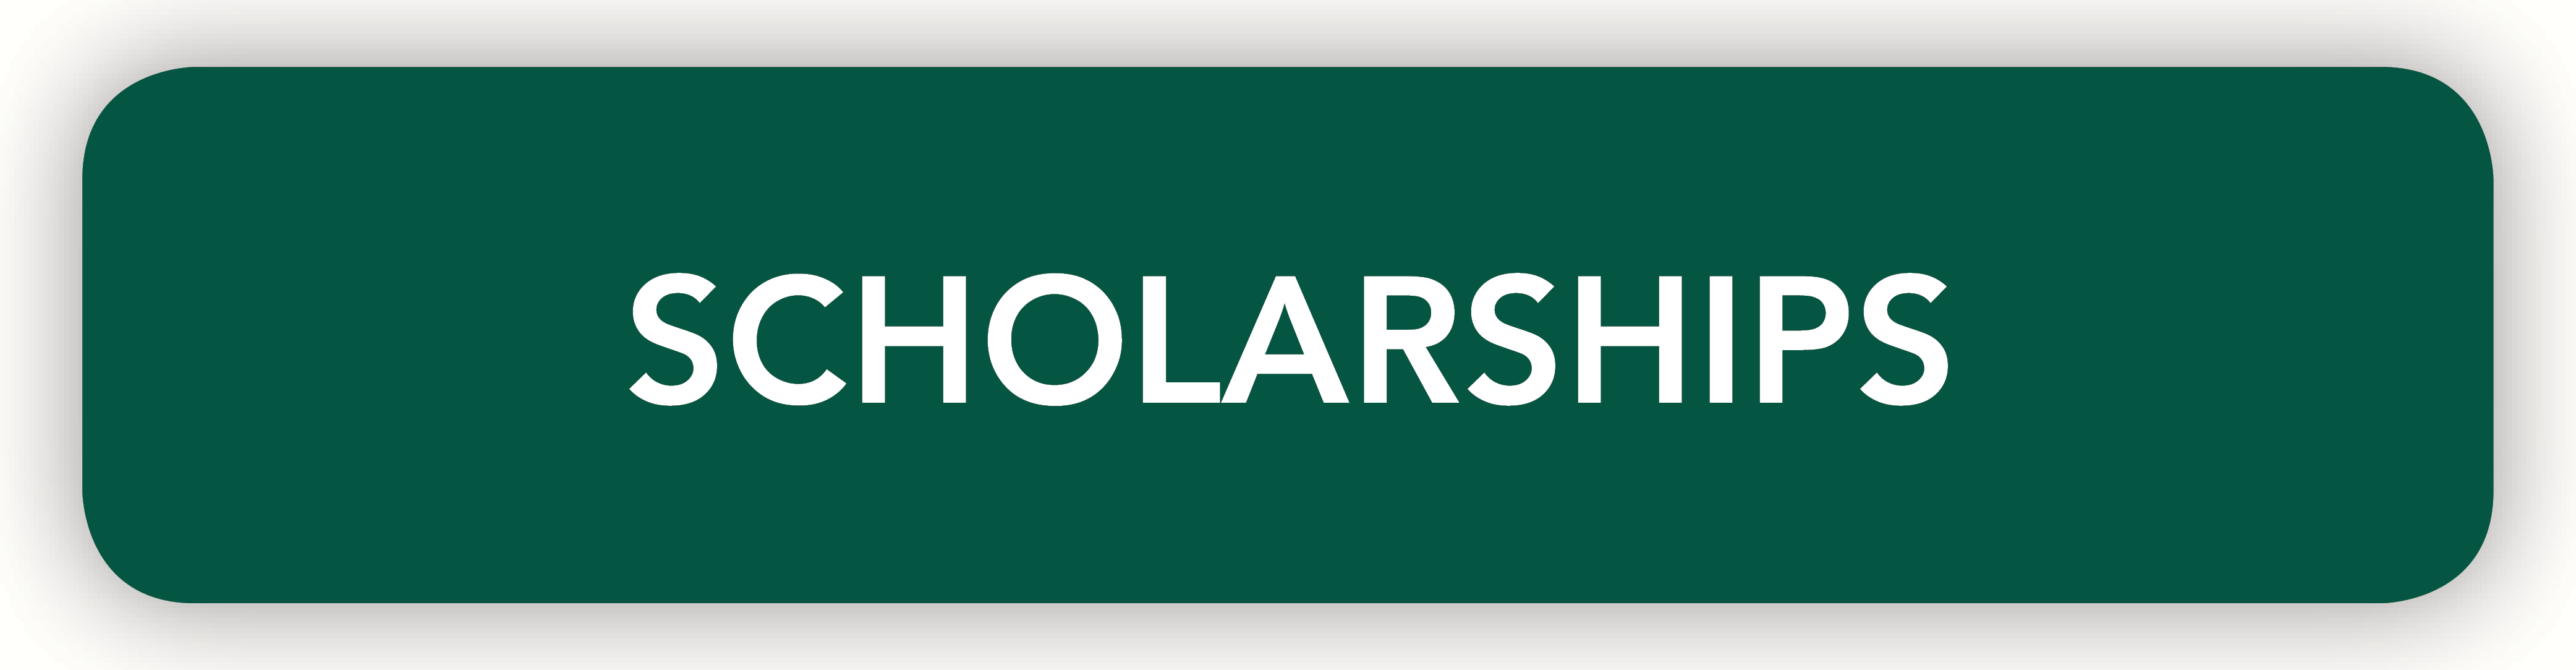 Scholarships Button